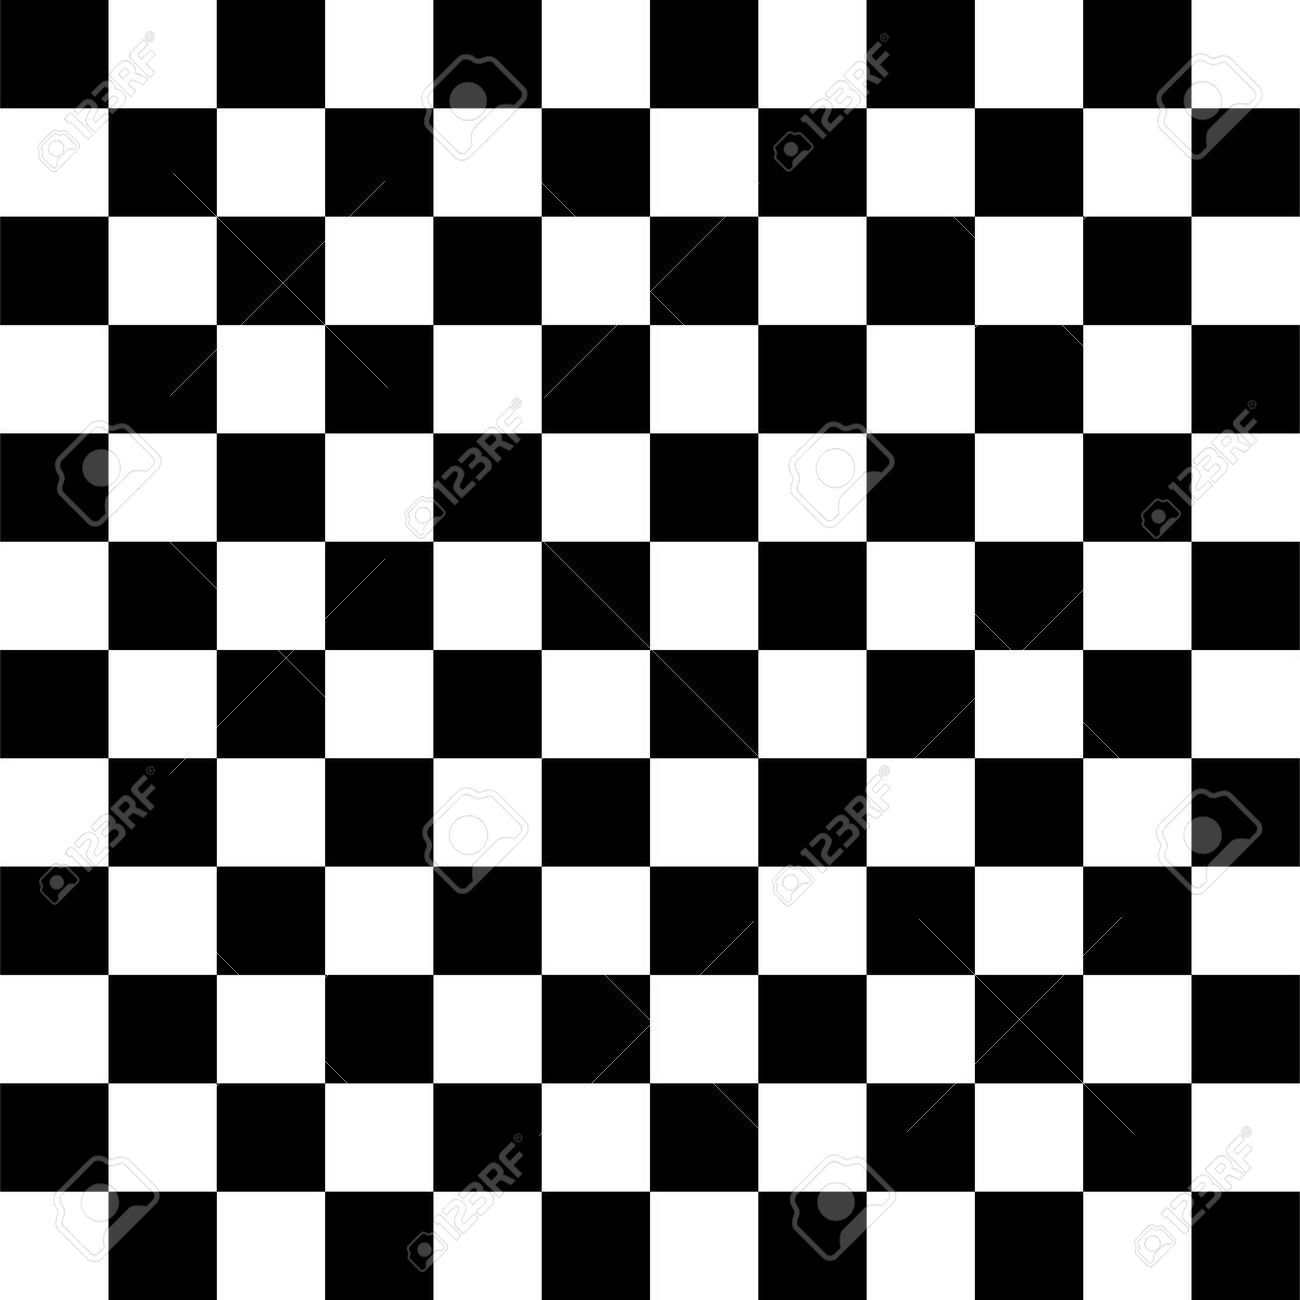 Simple black and white checkered abtract background.